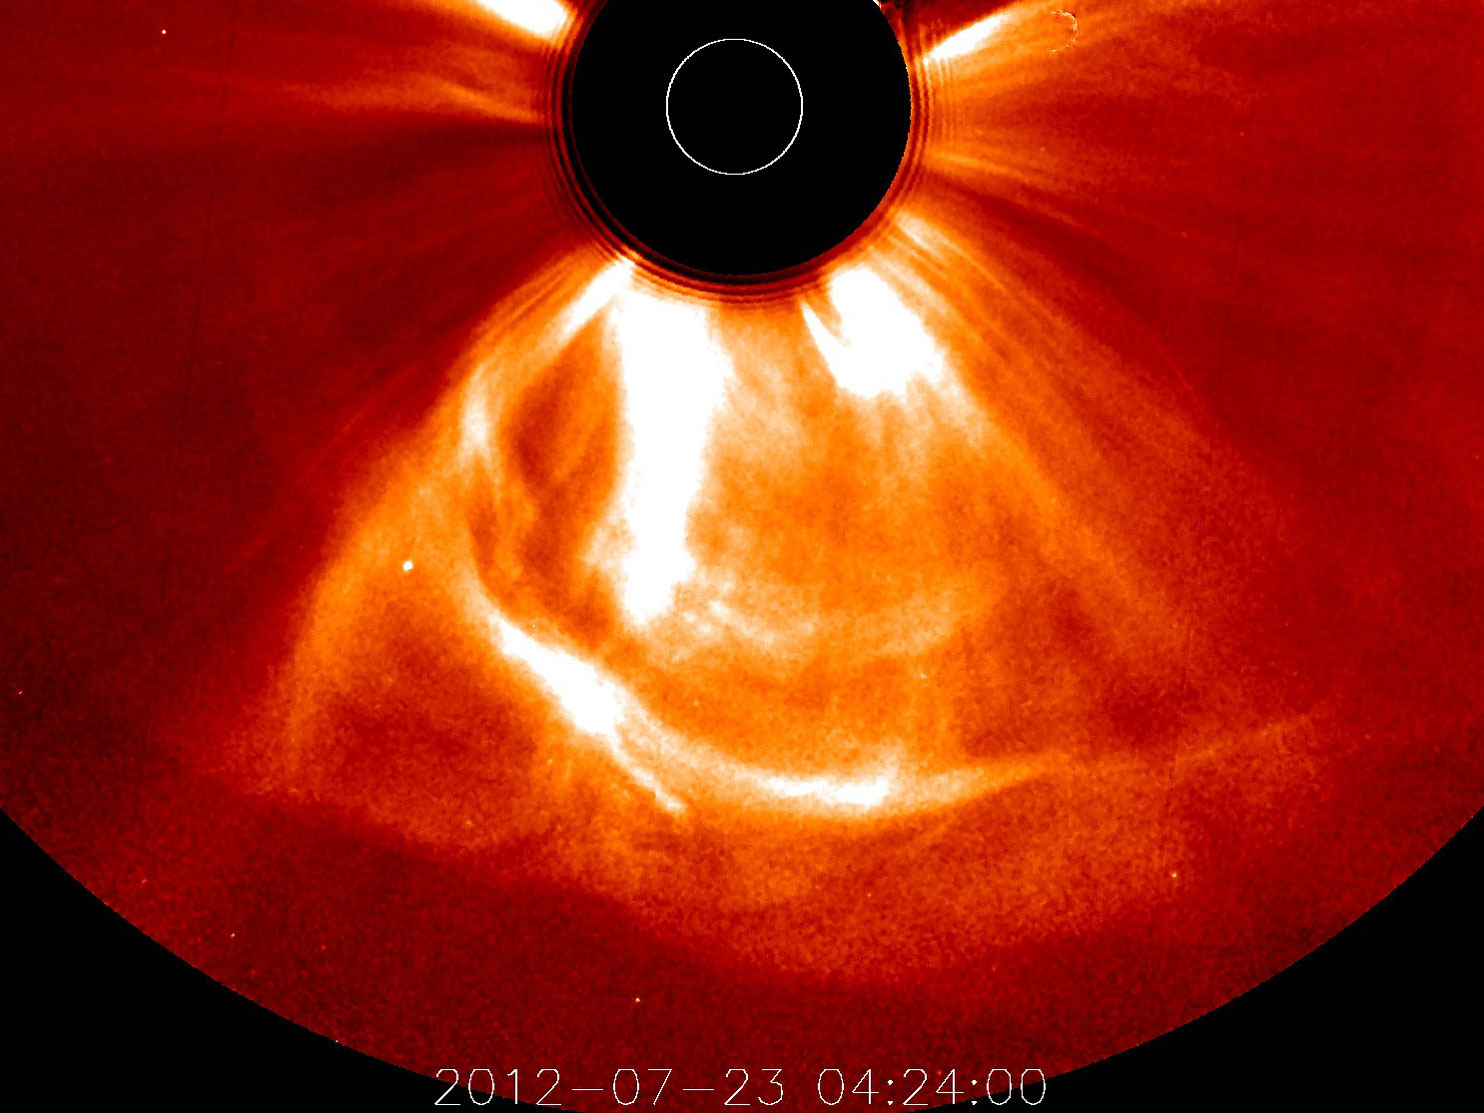 solar flare 2012 misses earth - photo #13